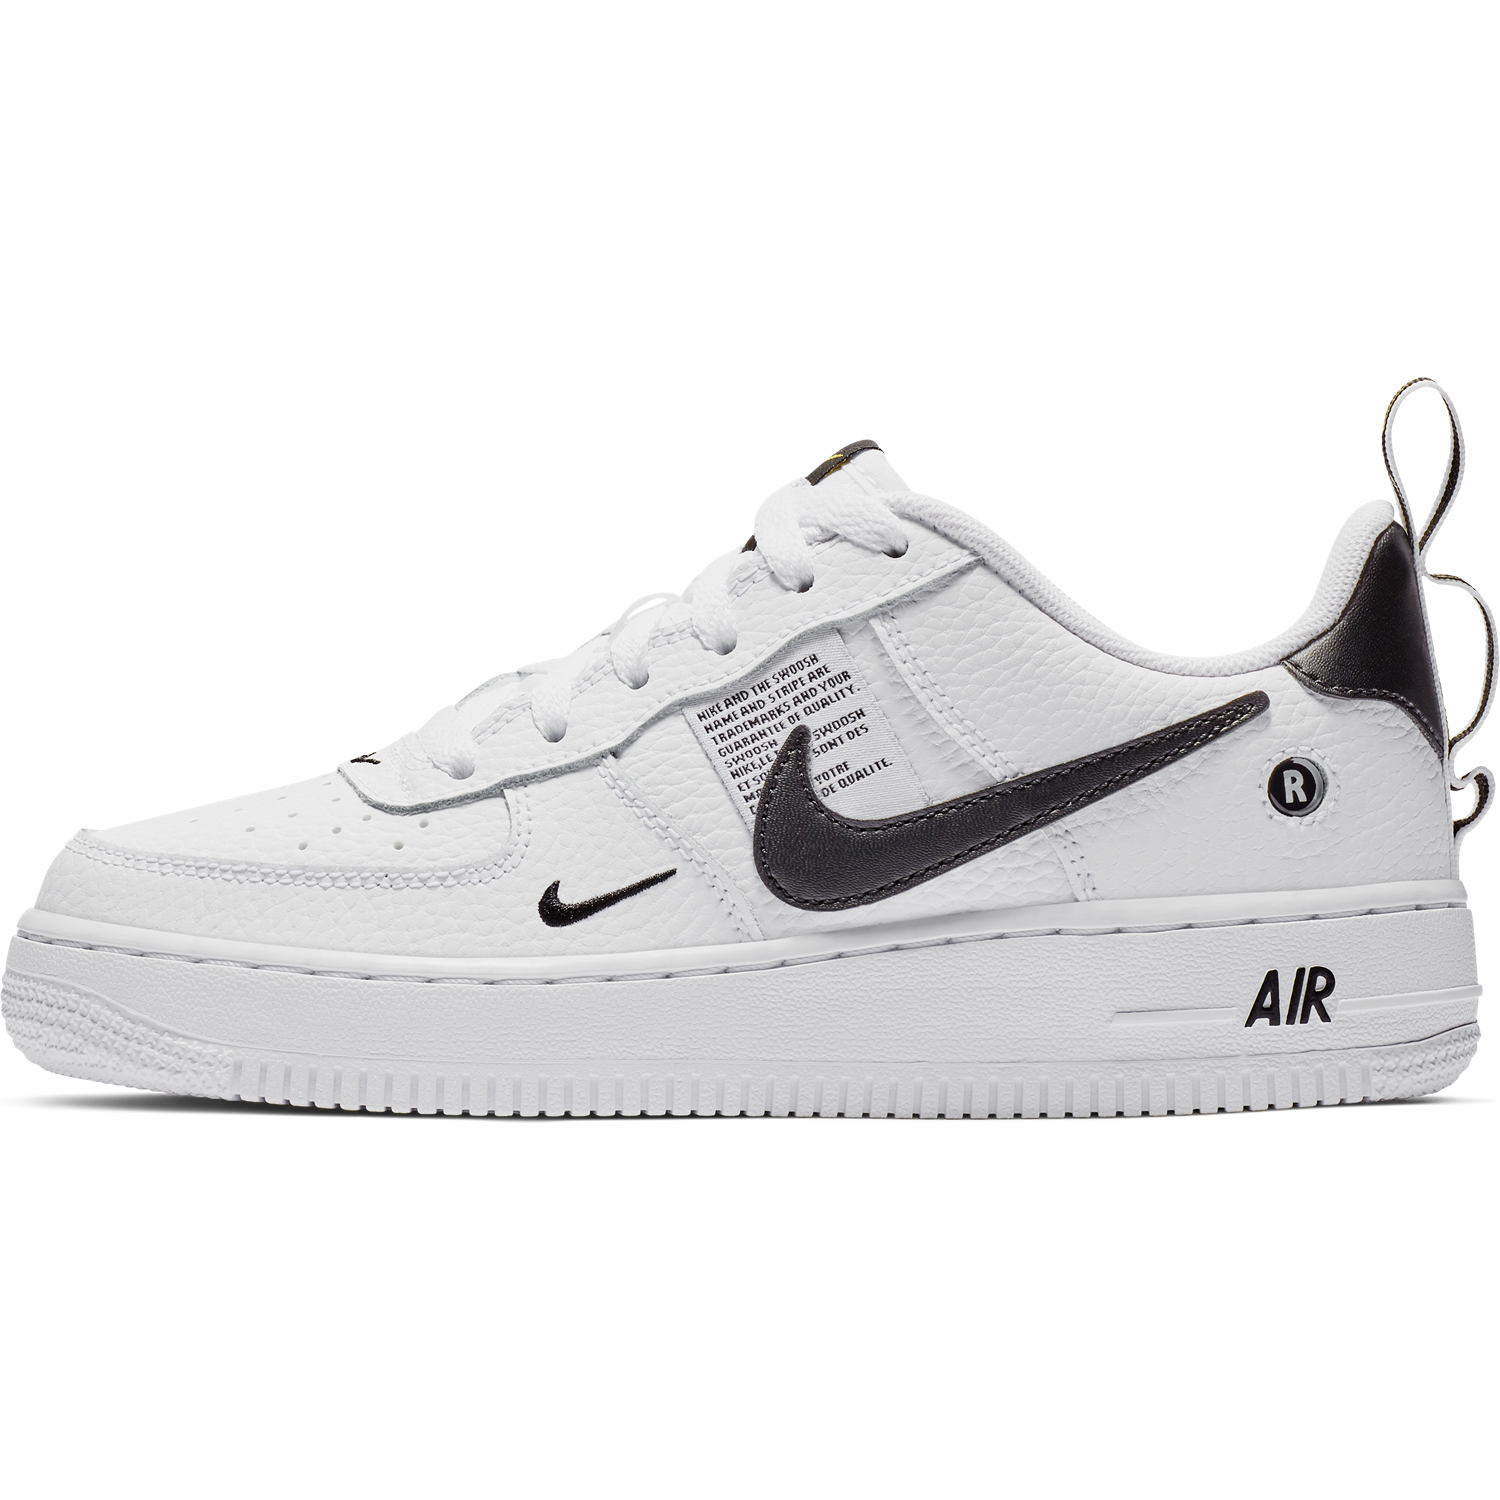 low priced 40e1d c4547 ... BUTY JUNIOR LIFESTYLE NIKE AIR FORCE 1 LV8 UTILITY (GS) BIAŁE  AR1708-100 ...